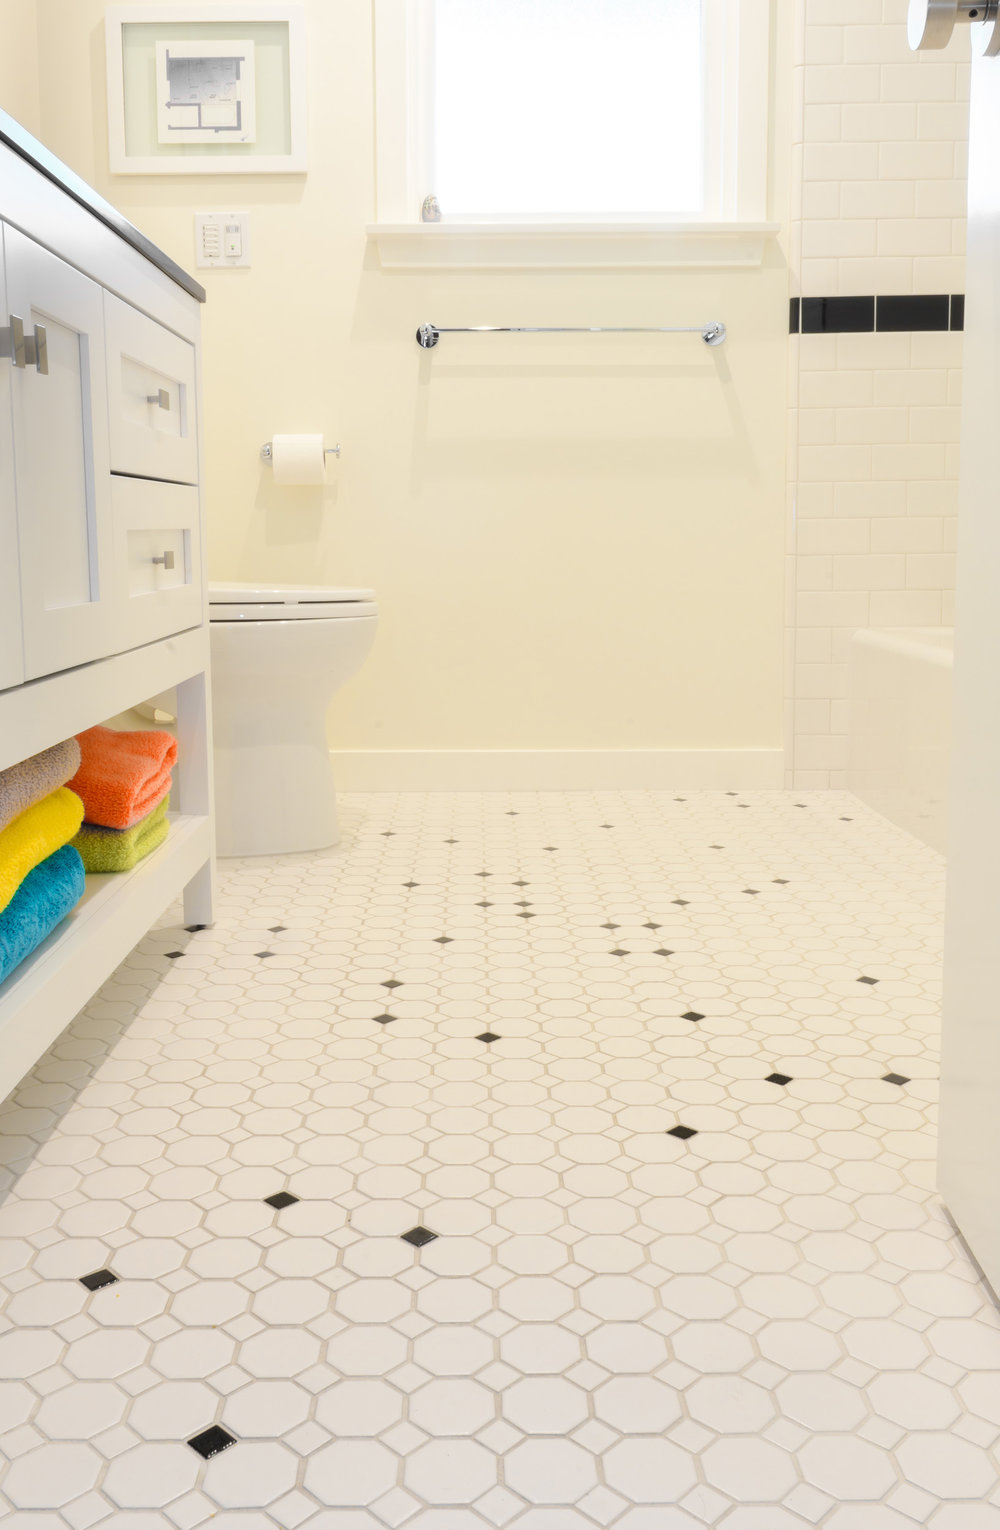 All white bathroom remodel using black accent border and black octagon dots on floor to mimic the constellations in the Northern sky